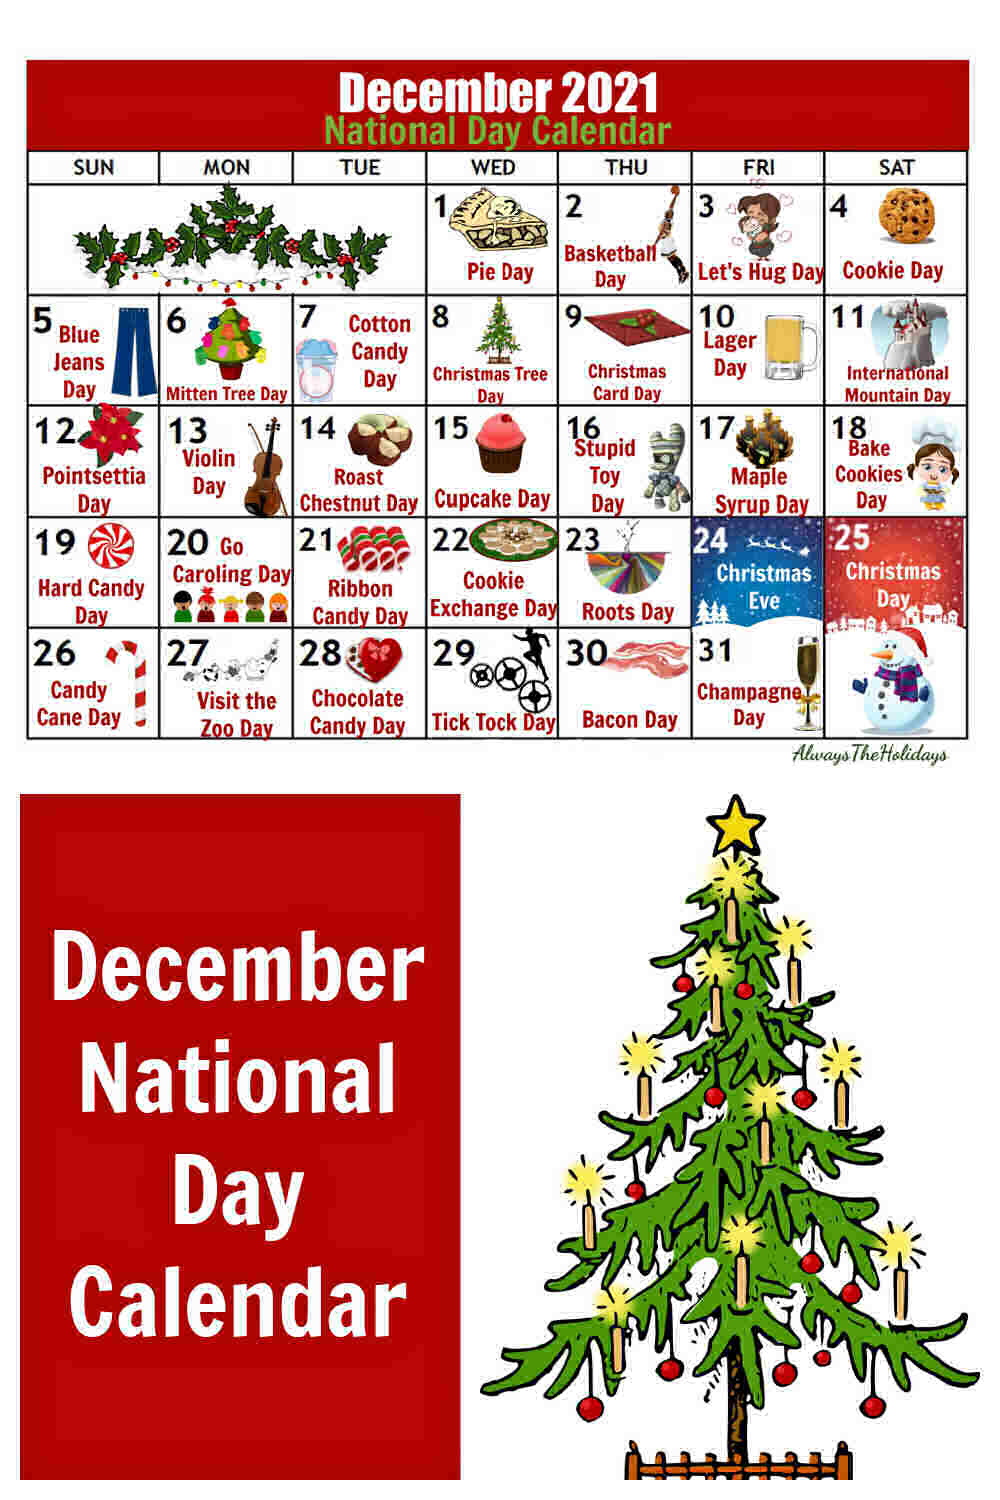 Calendar and Christmas tree with words December National Day Calendar.